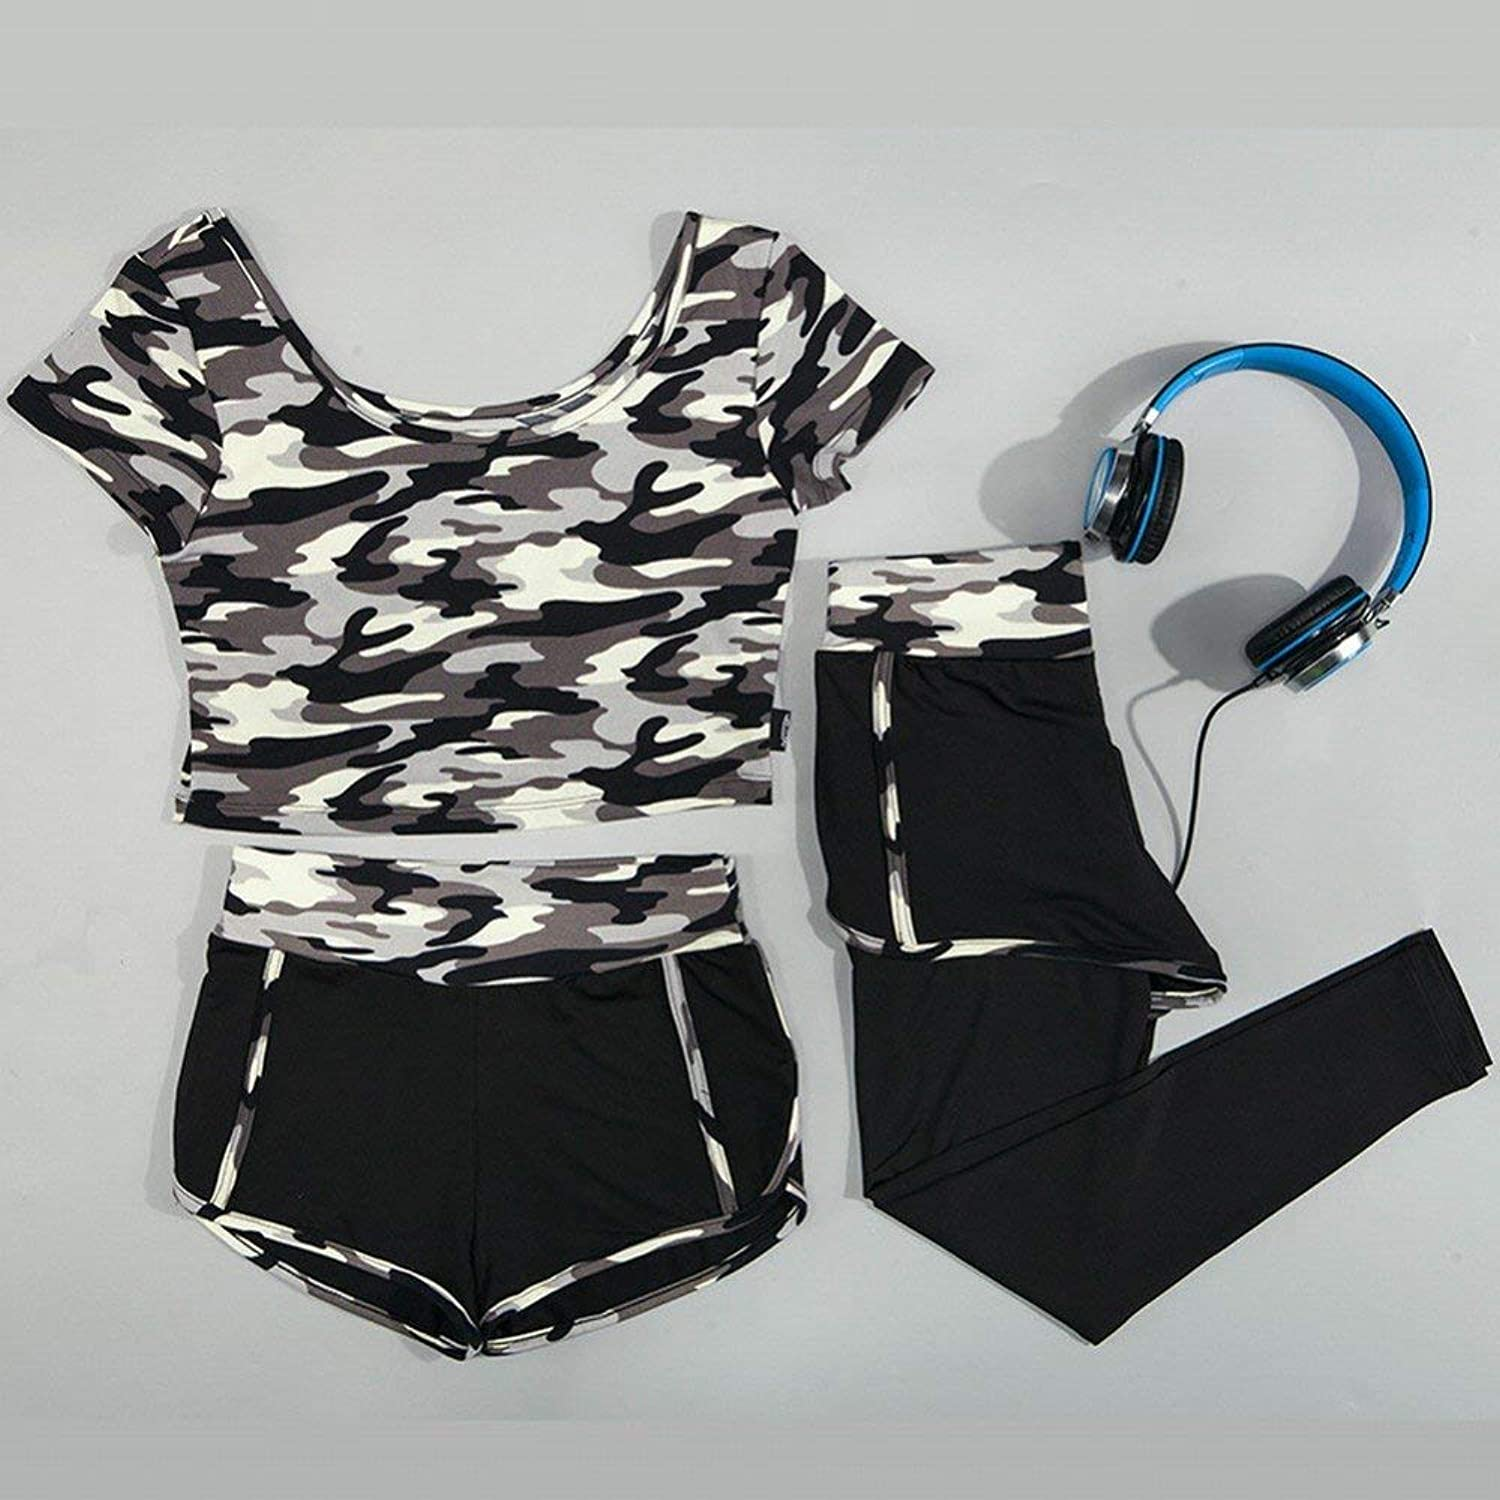 JINGB Spring Summer Yoga Sports Camouflage Workout Women Outoor Training Trio (color   Grey, Size   Large)